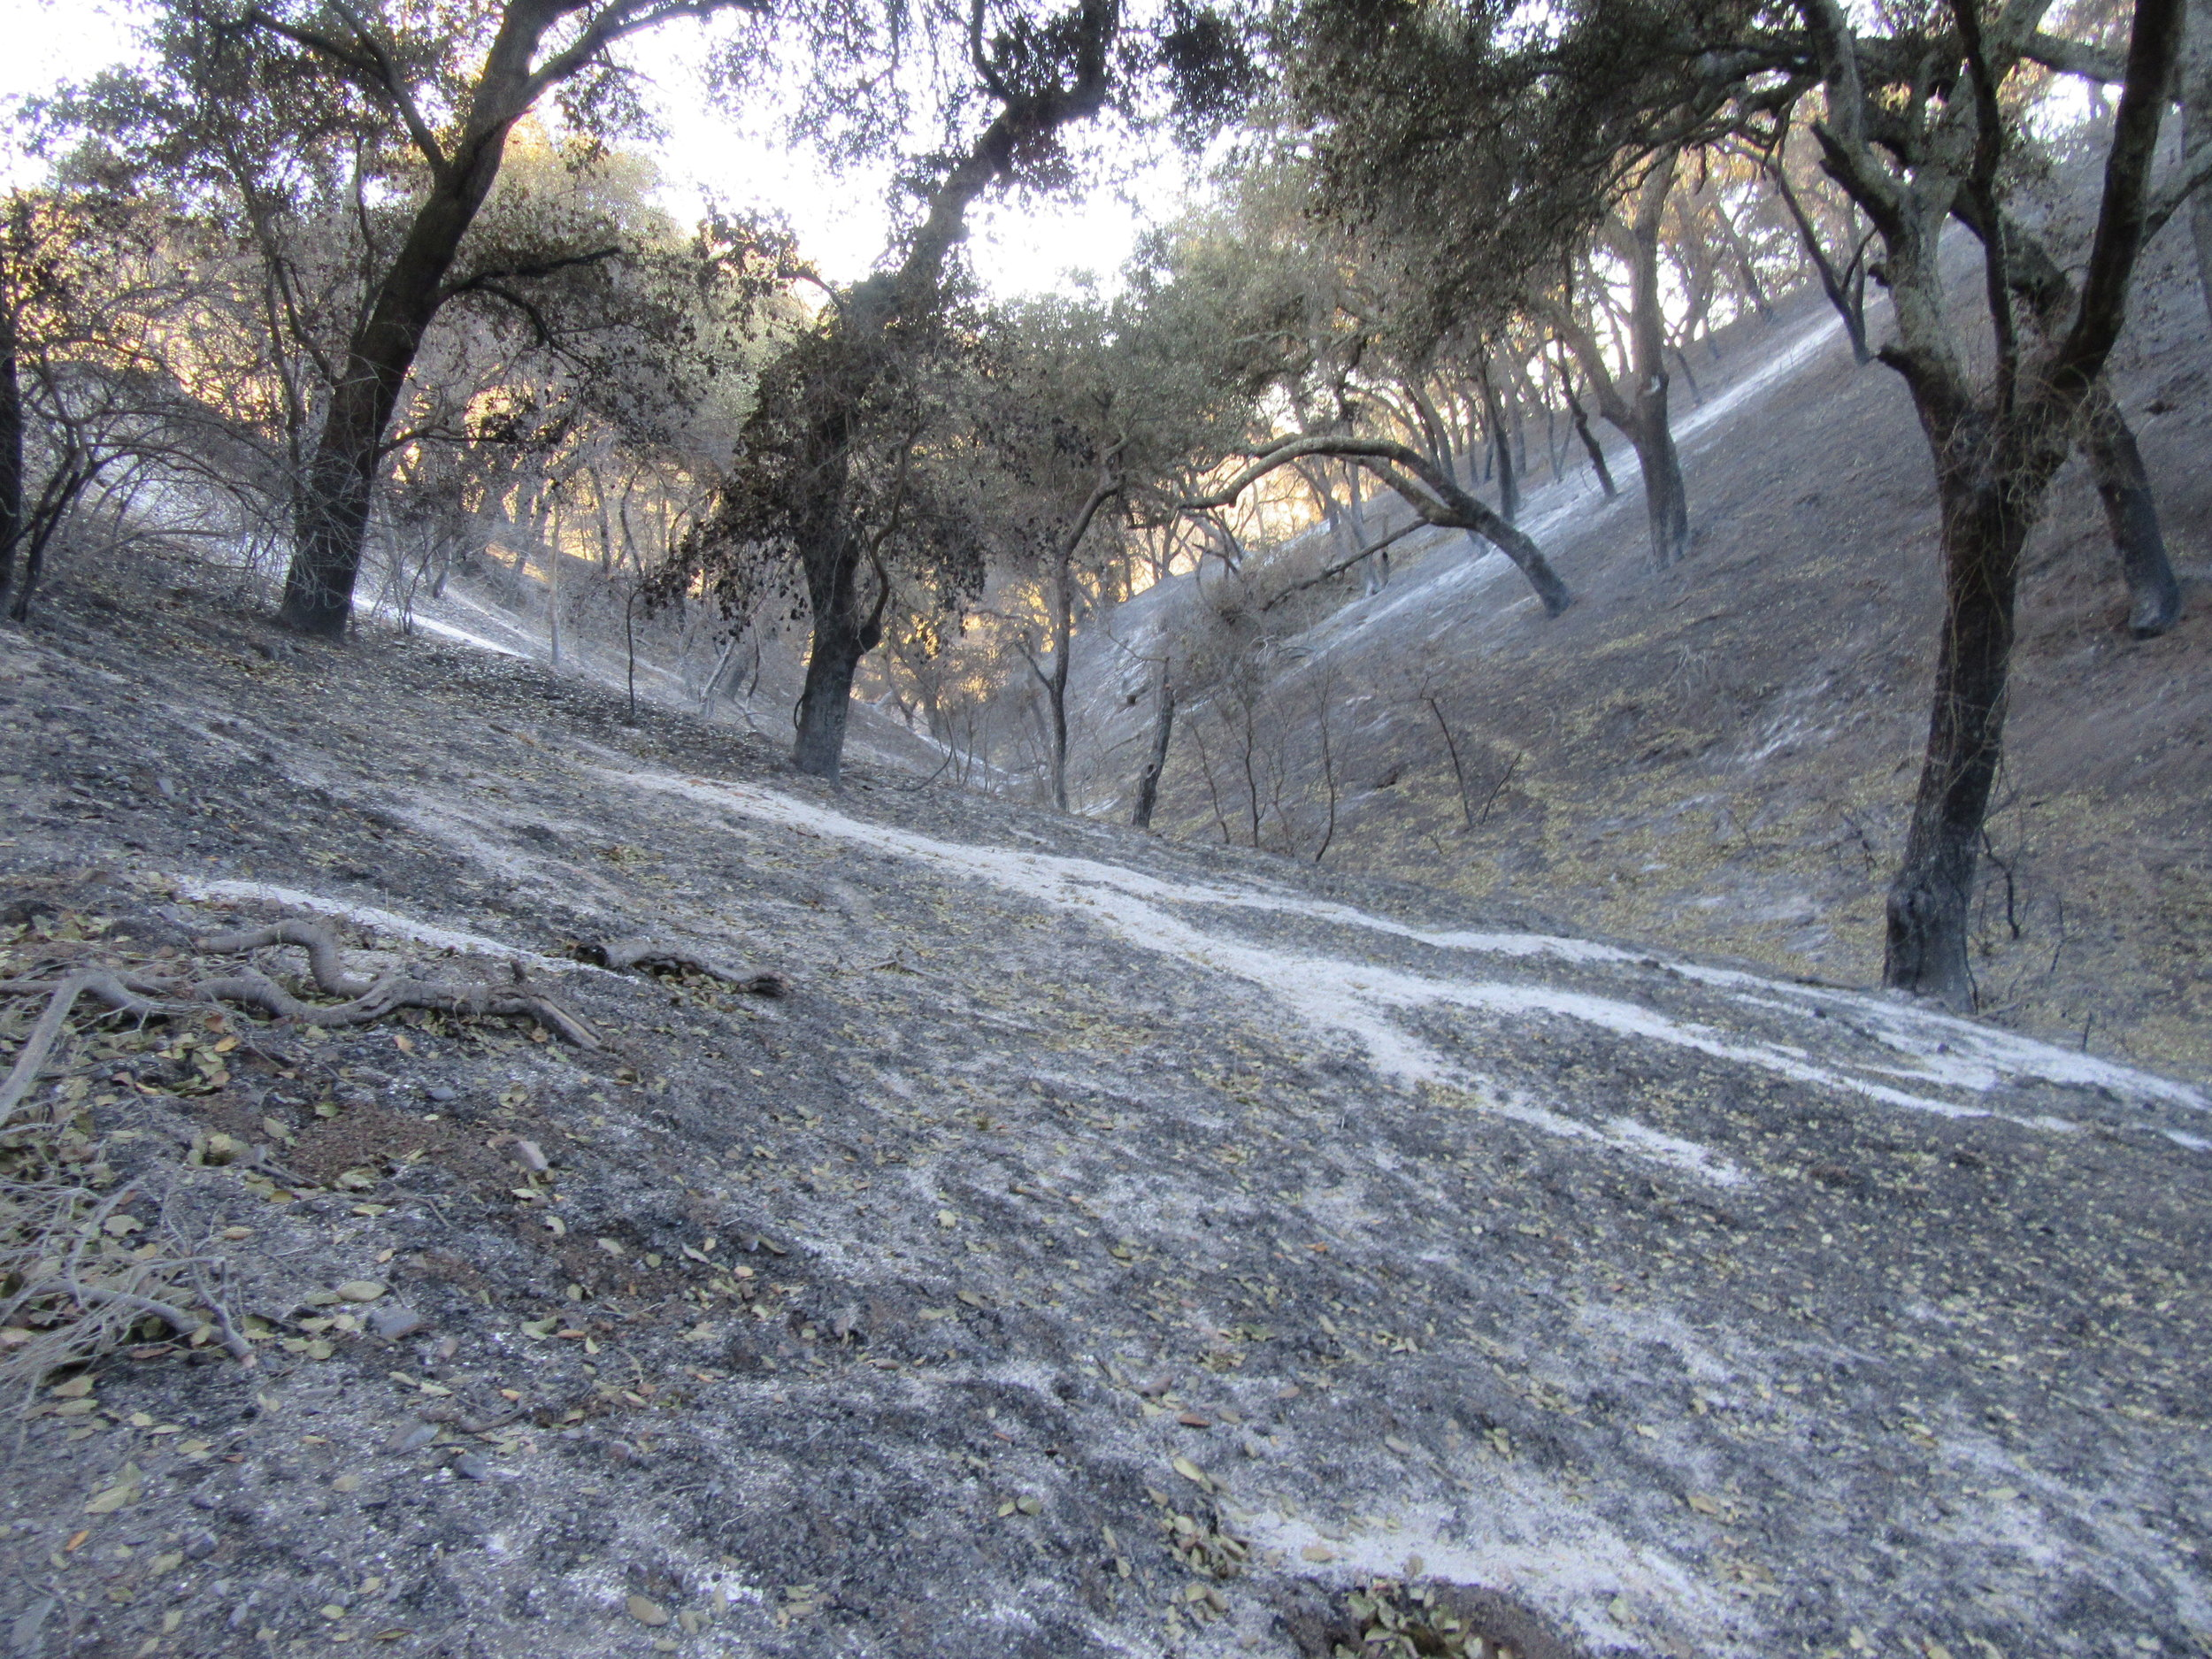 A BURNED AREA on the way to the well head at Meher Mount just after the December 4, 2017 Thomas Fire. (Photo: Sam Ervin, December 21, 2017)